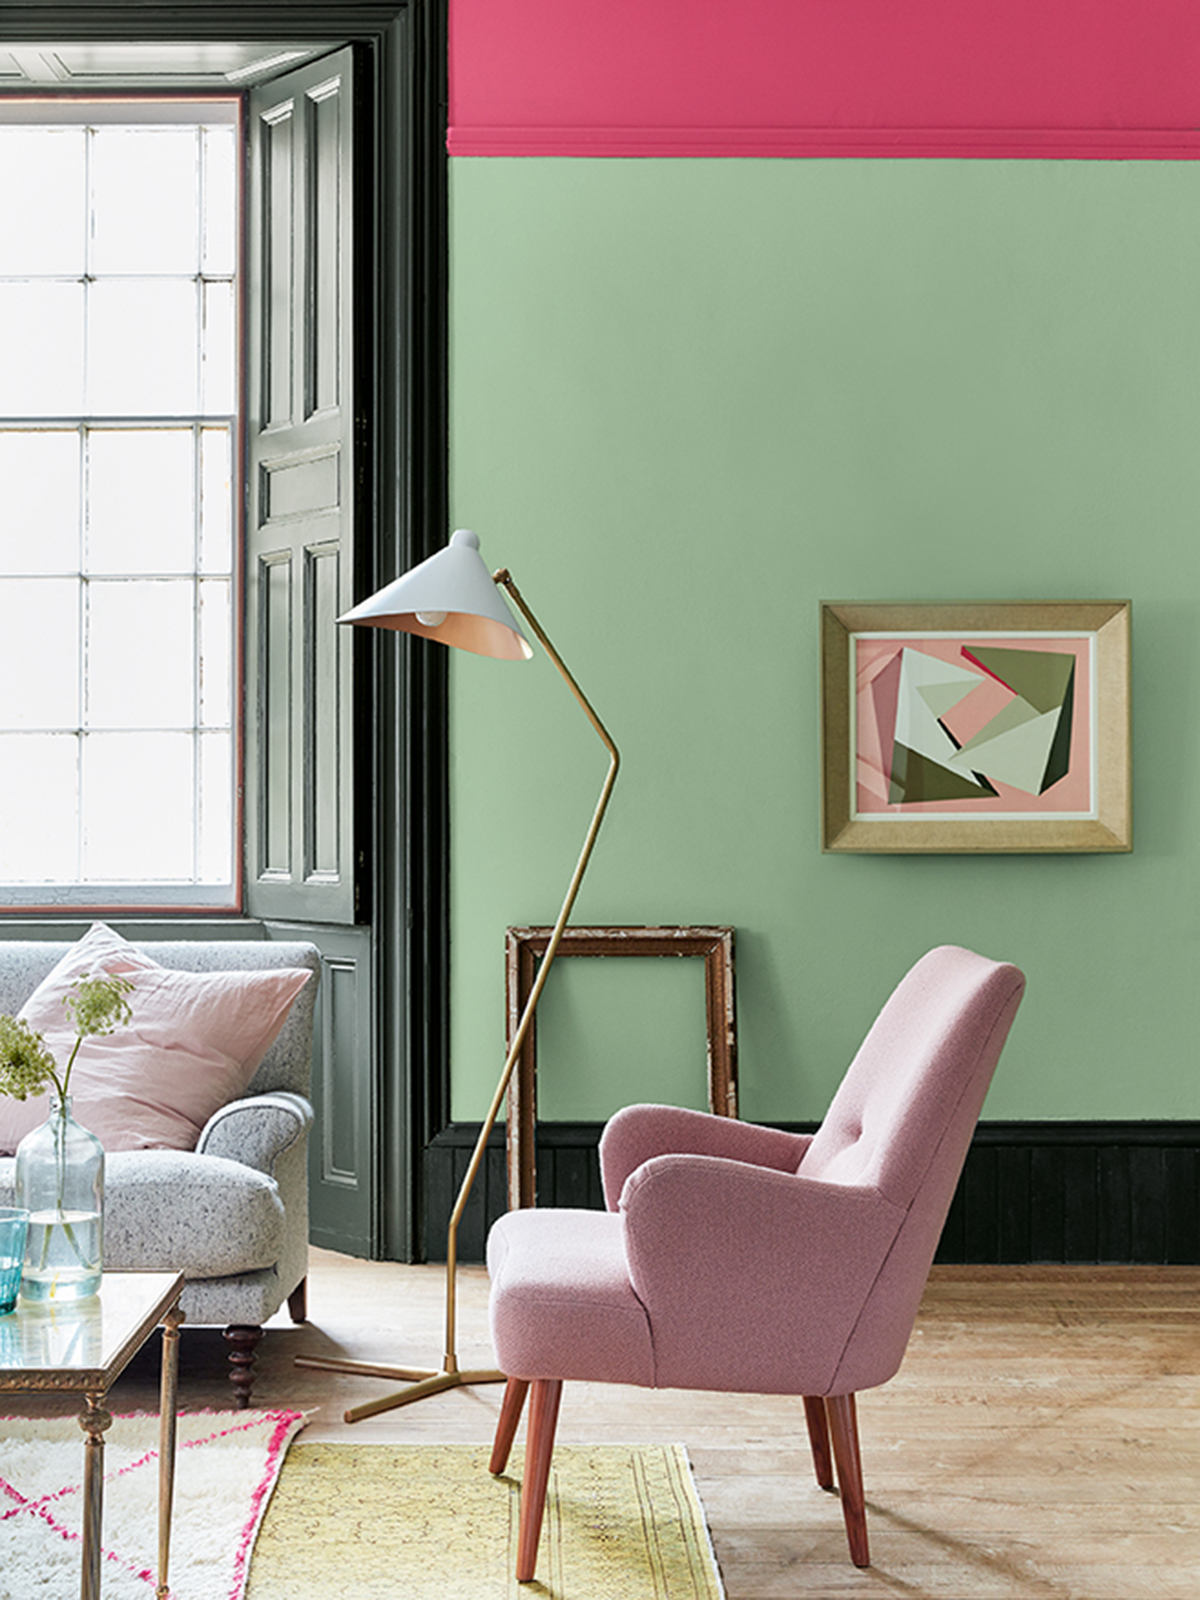 My latest colour crush is Mint green for it's fresh, uplifting tone. This pastel shade works extremely well with mint green walls and a pink armchair in a living room. Dark painted woodwork add a stark contrast. Gilt accent pieces or brass light fixtures create a modern and inviting space. Mint is set to be a key colour trend this year and well into 2020. Check out the blog for top tips and inspiration on using this hue. #sophierobinson #mint #colourcrush #lovecolour